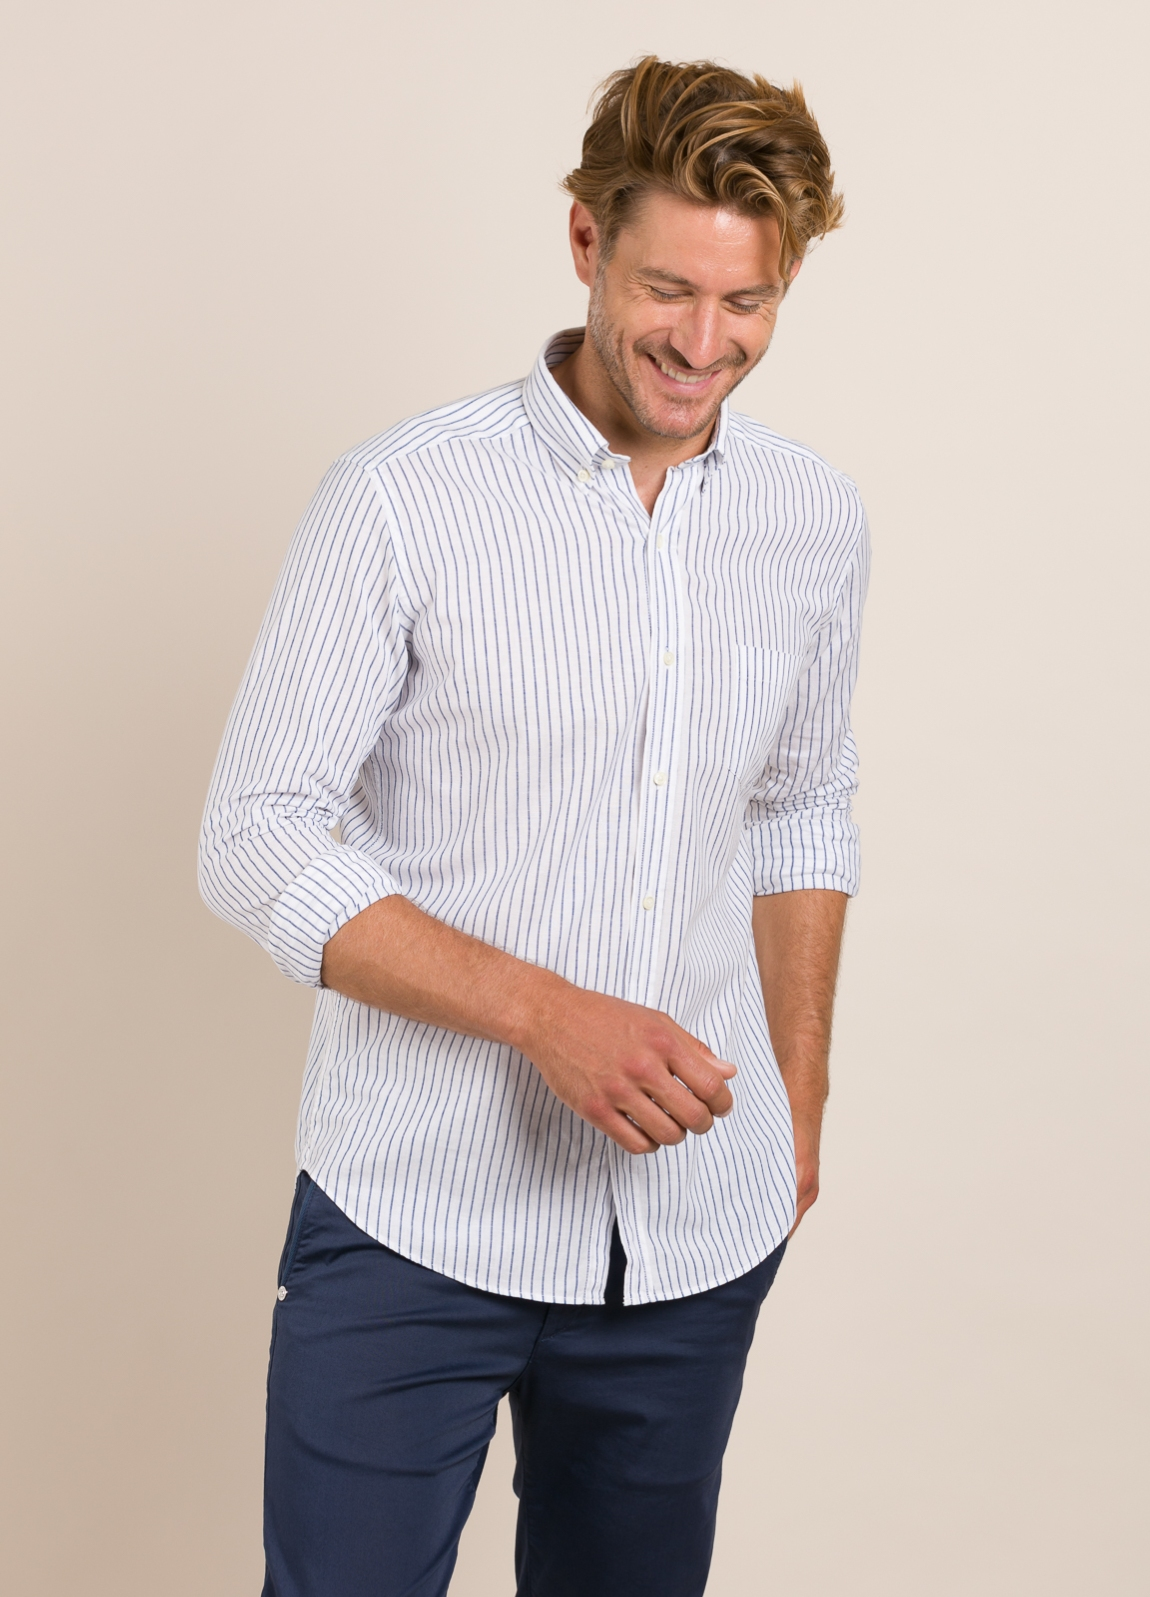 Camisa Casual Wear FUREST COLECCIÓN slim fit fil blanco.